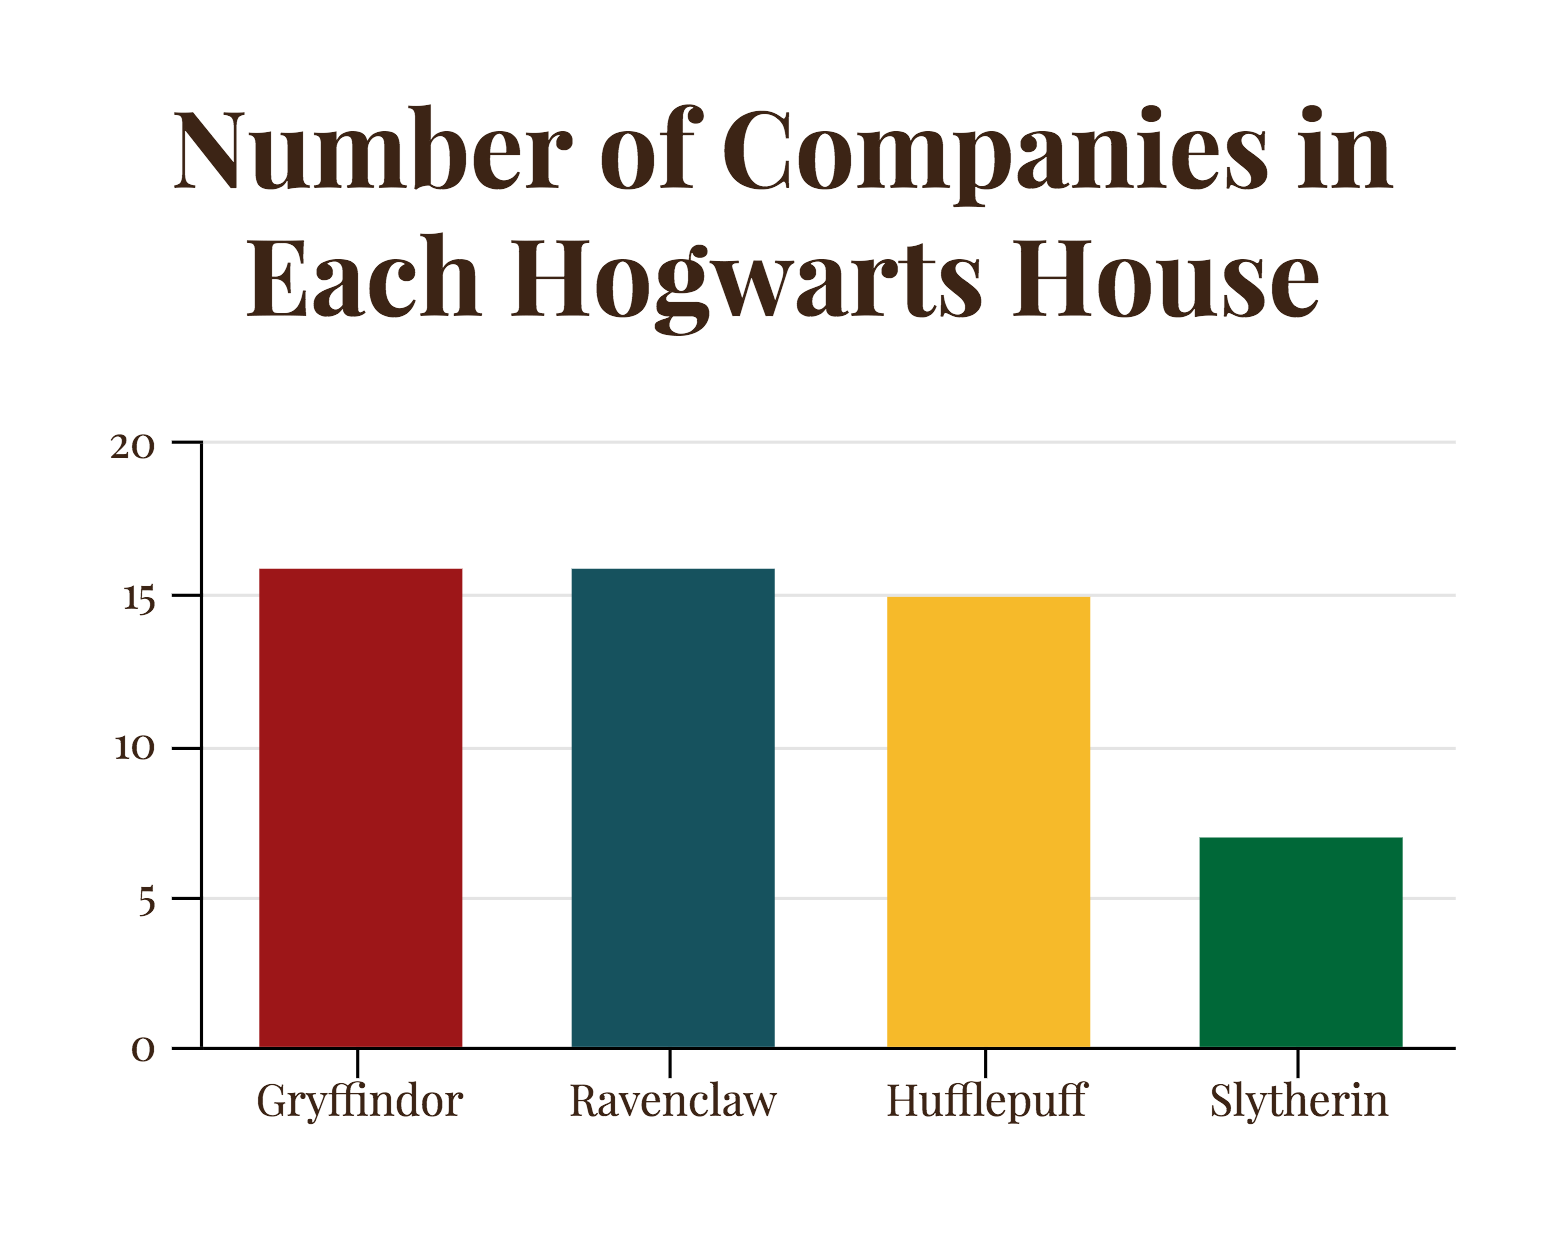 Graph Design: Number of Companies in Each Hogwarts House